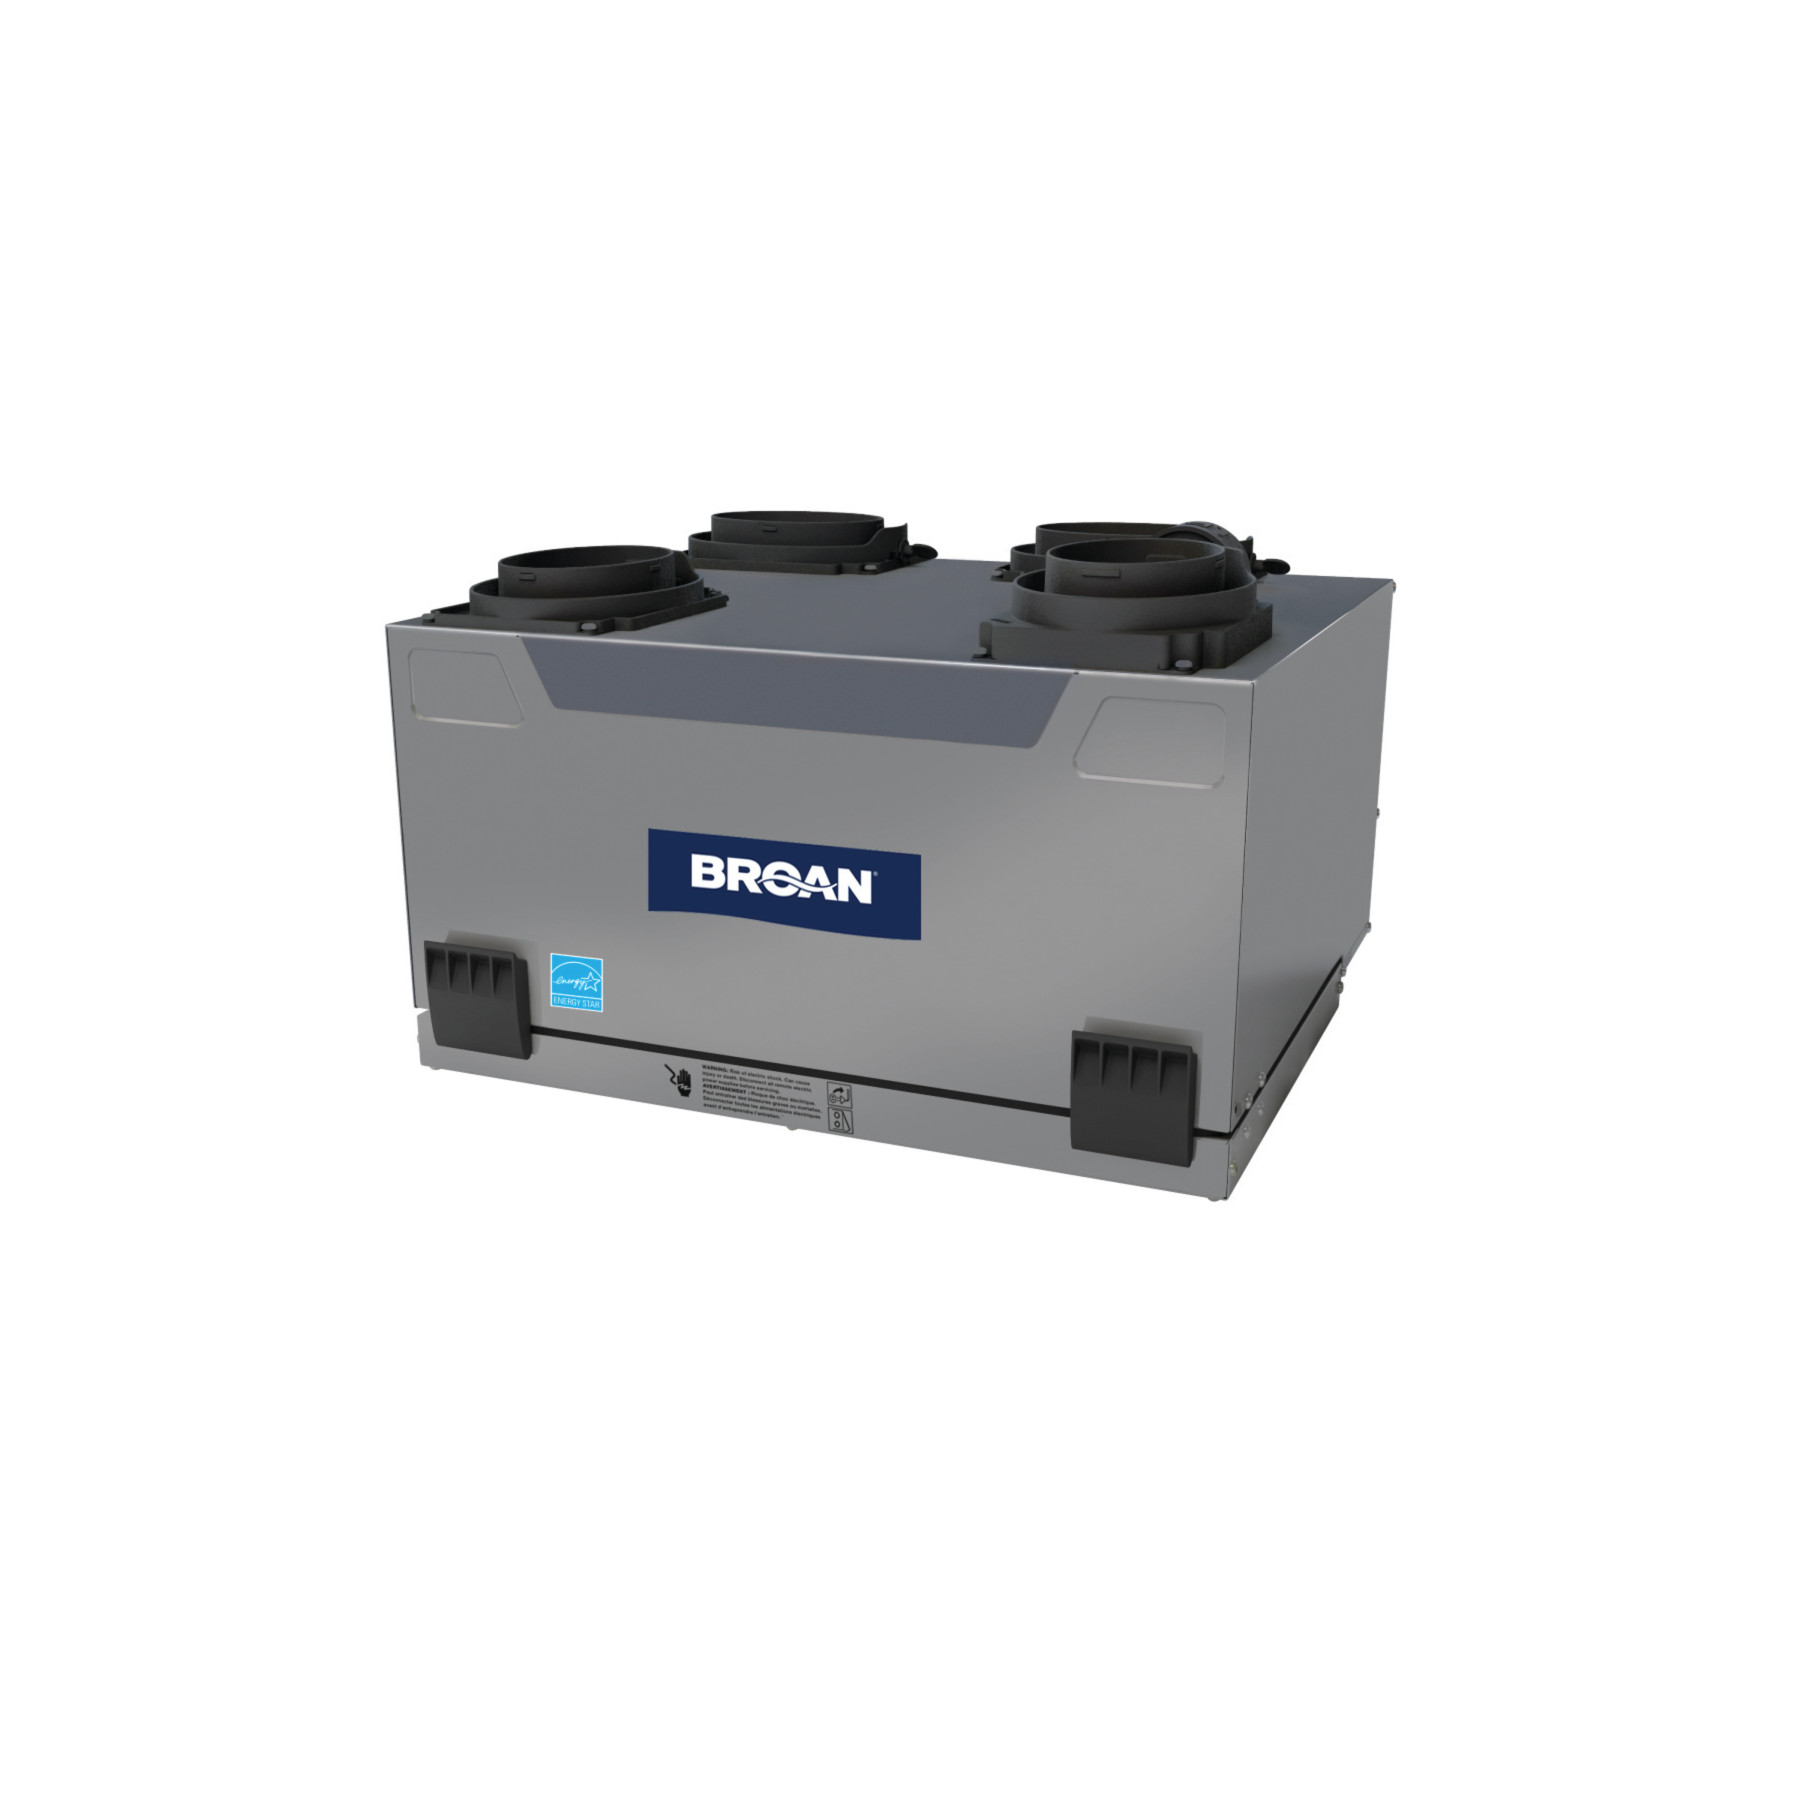 Broan® Compact Flex Series™ High Efficiency Heat Recovery Ventilator, 115 CFM at 0.4 in. w.g.